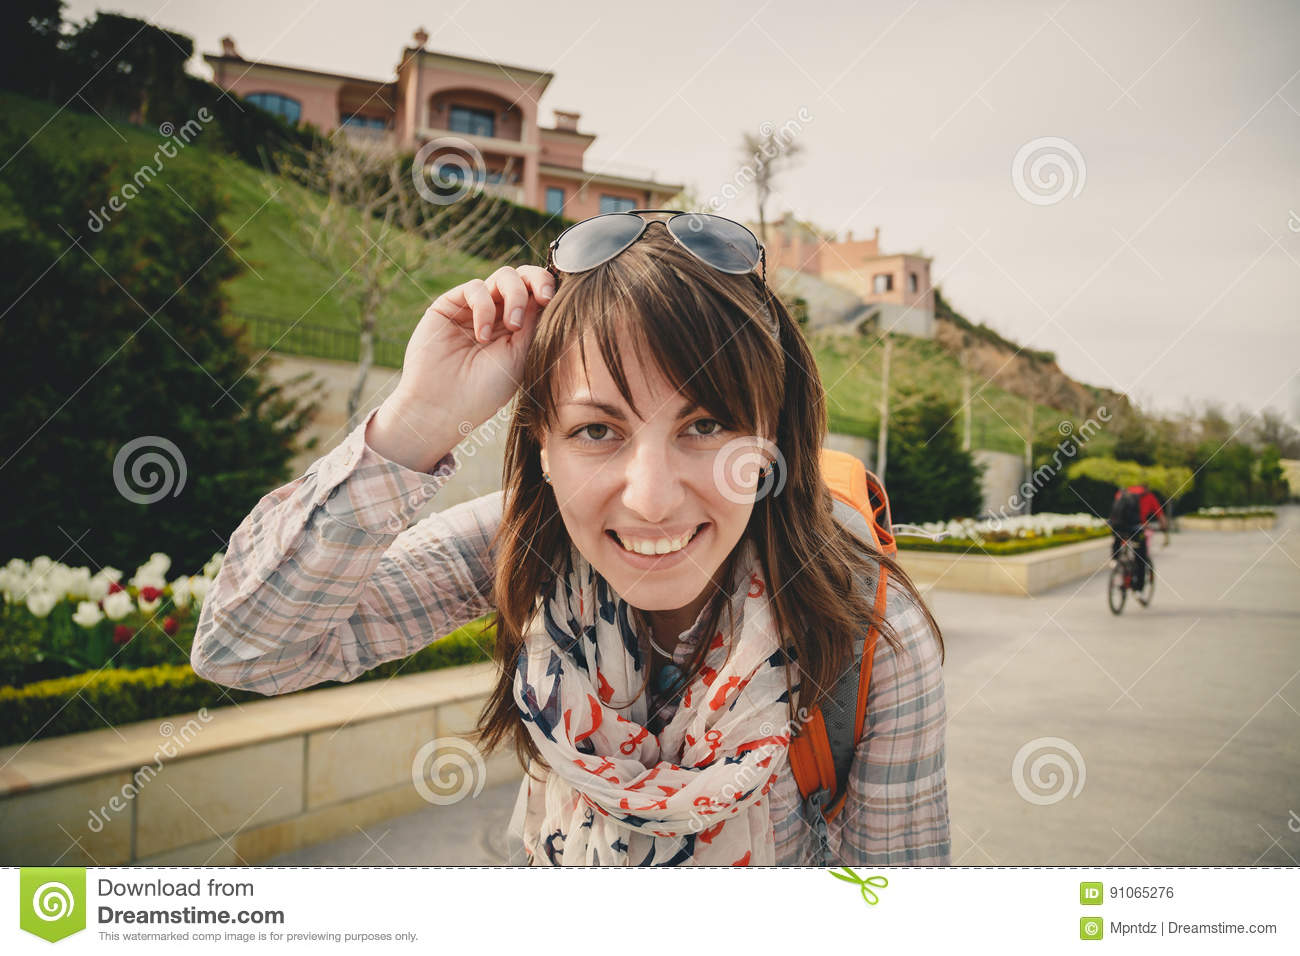 ac391b93bf3 Young smiling happy girl in pink shirt and anchors scarf with sunglasses on  head and orange backpack looking at camera outdoors. Healthy lifestyle  concept